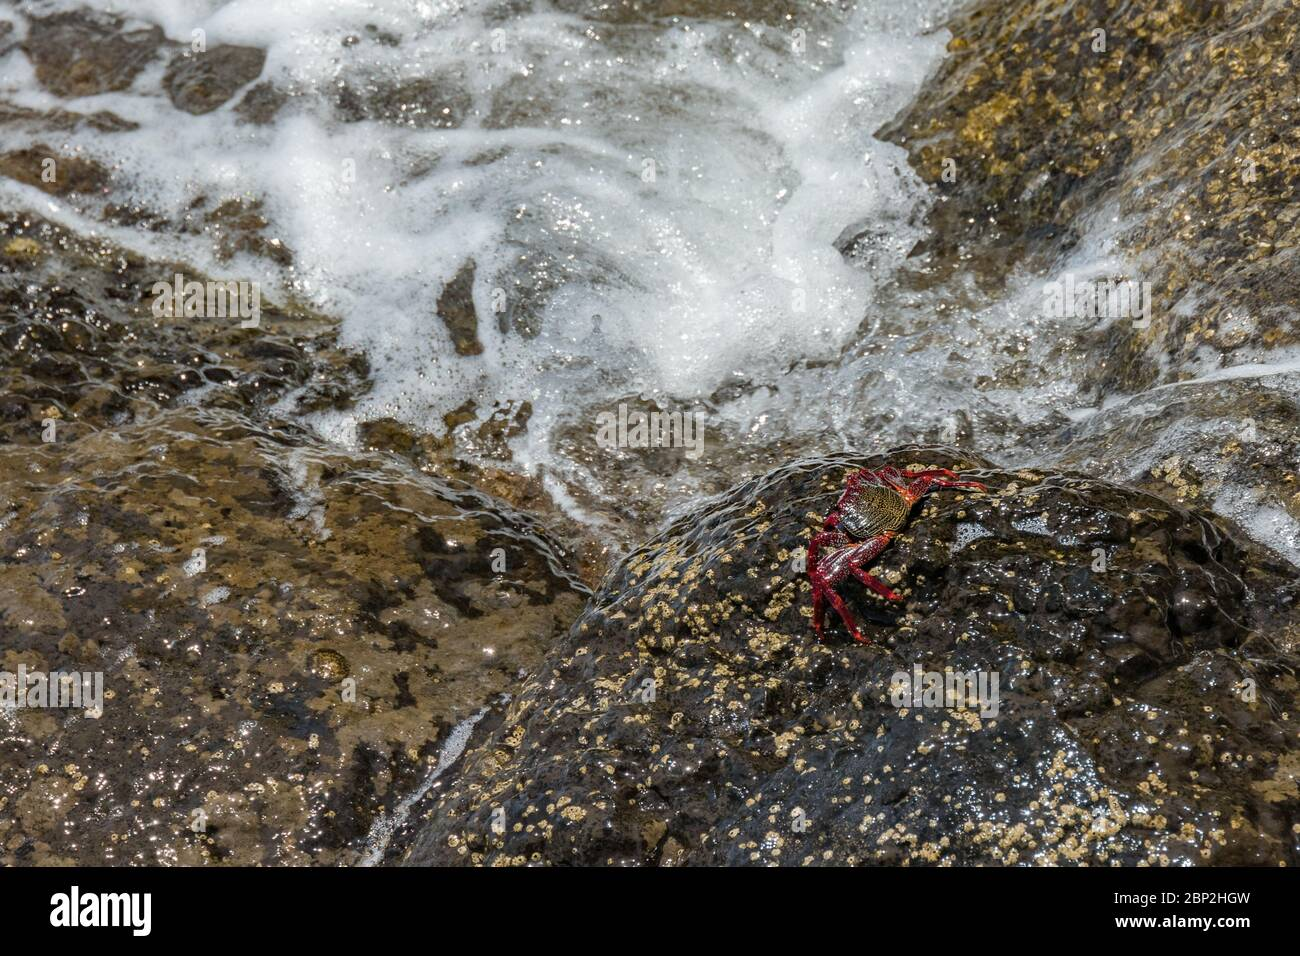 Red rock crab - Grapsus adscensionis - crawling on wet lava stones close to the sea to bask in the sun. Southern ocean shore of Tenerife, Canary Islan Stock Photo